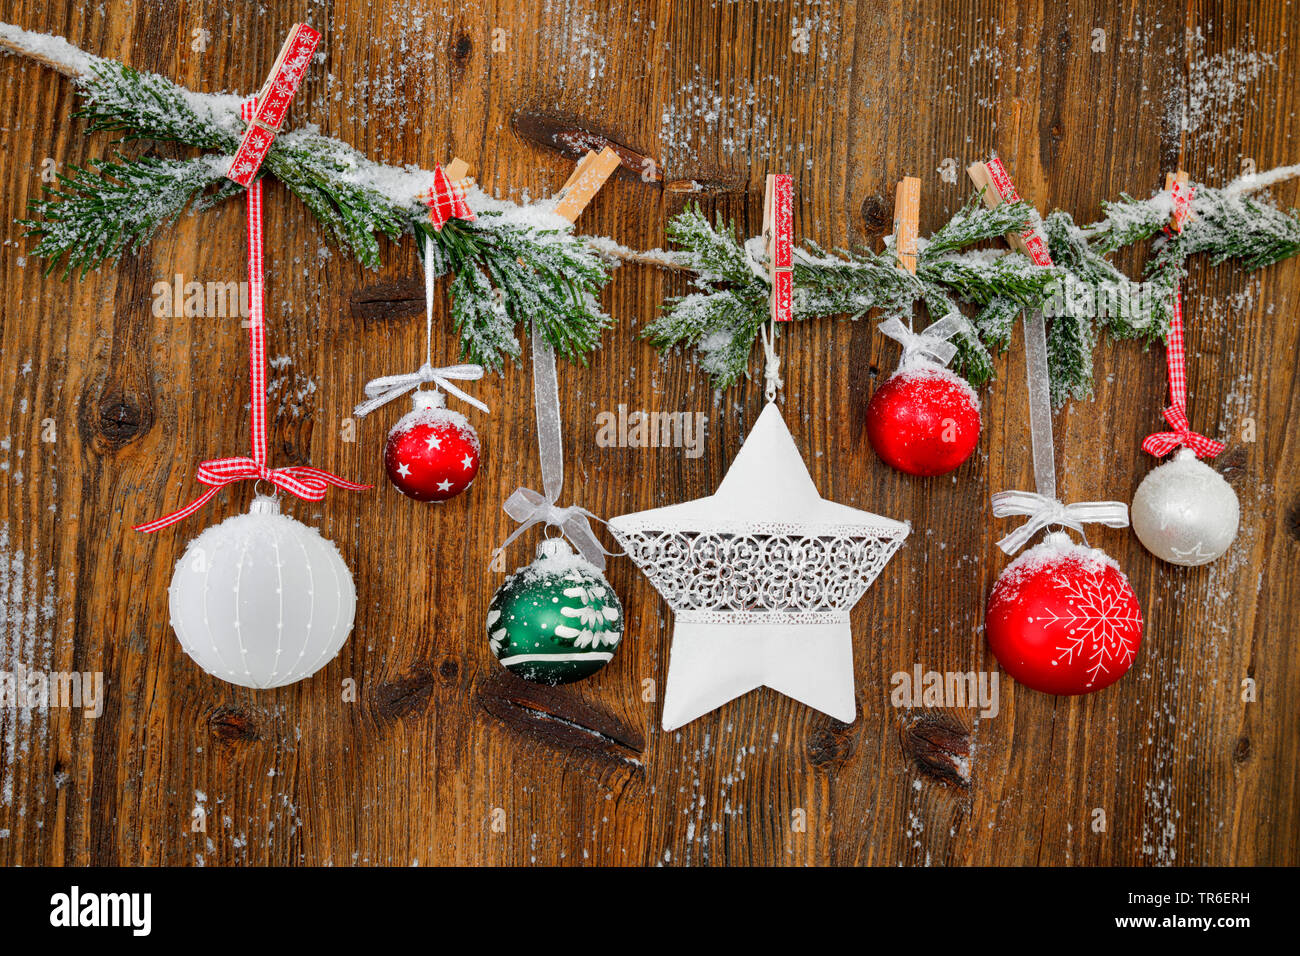 Holz Christbaumkugeln.Holz Stern Stock Photos Holz Stern Stock Images Alamy